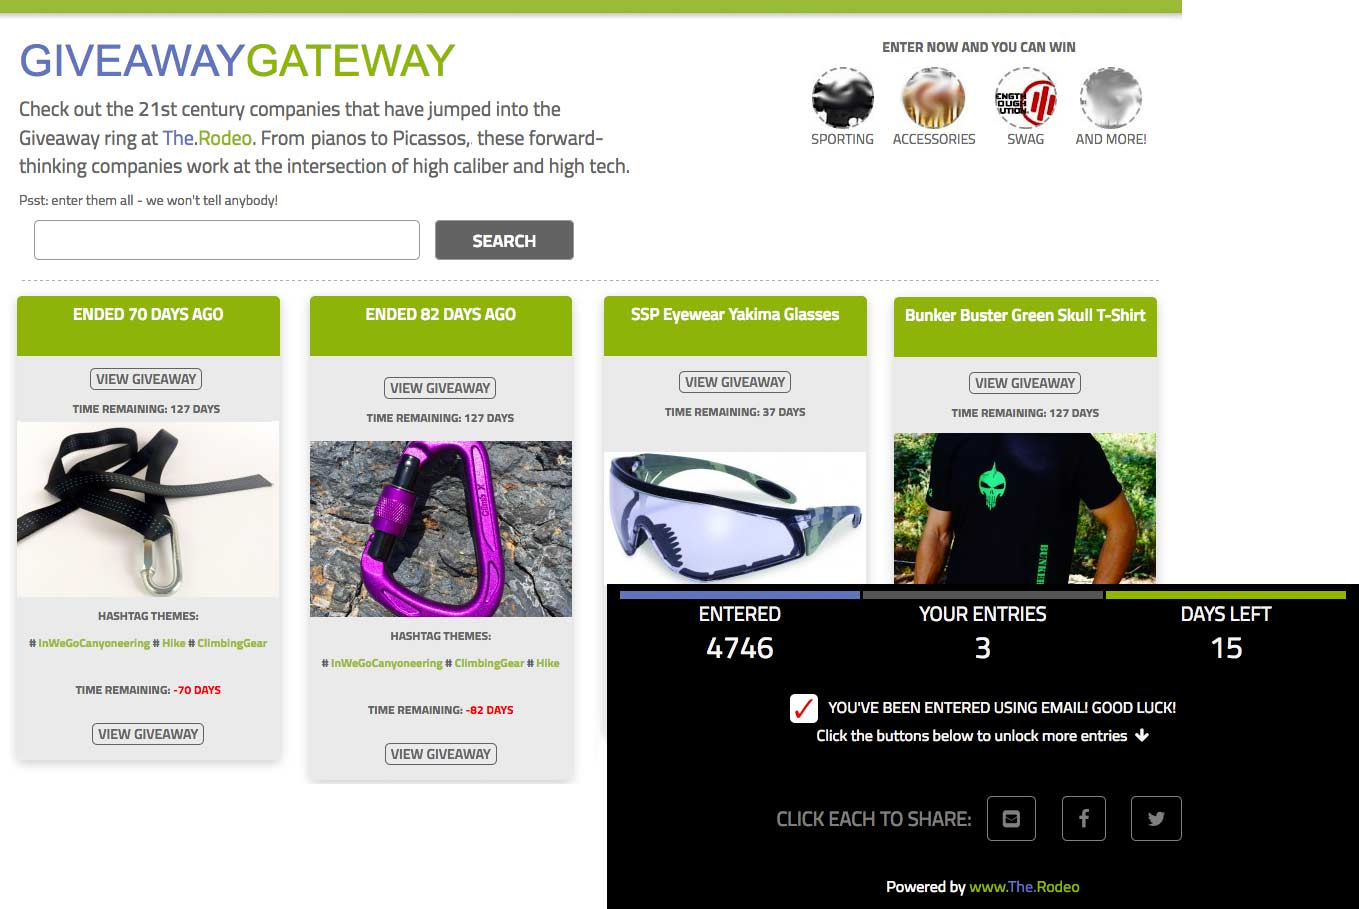 www.The.Rodeo's Giveaway Gateway Platform: The.Rodeo's display networks extends your brand's reach